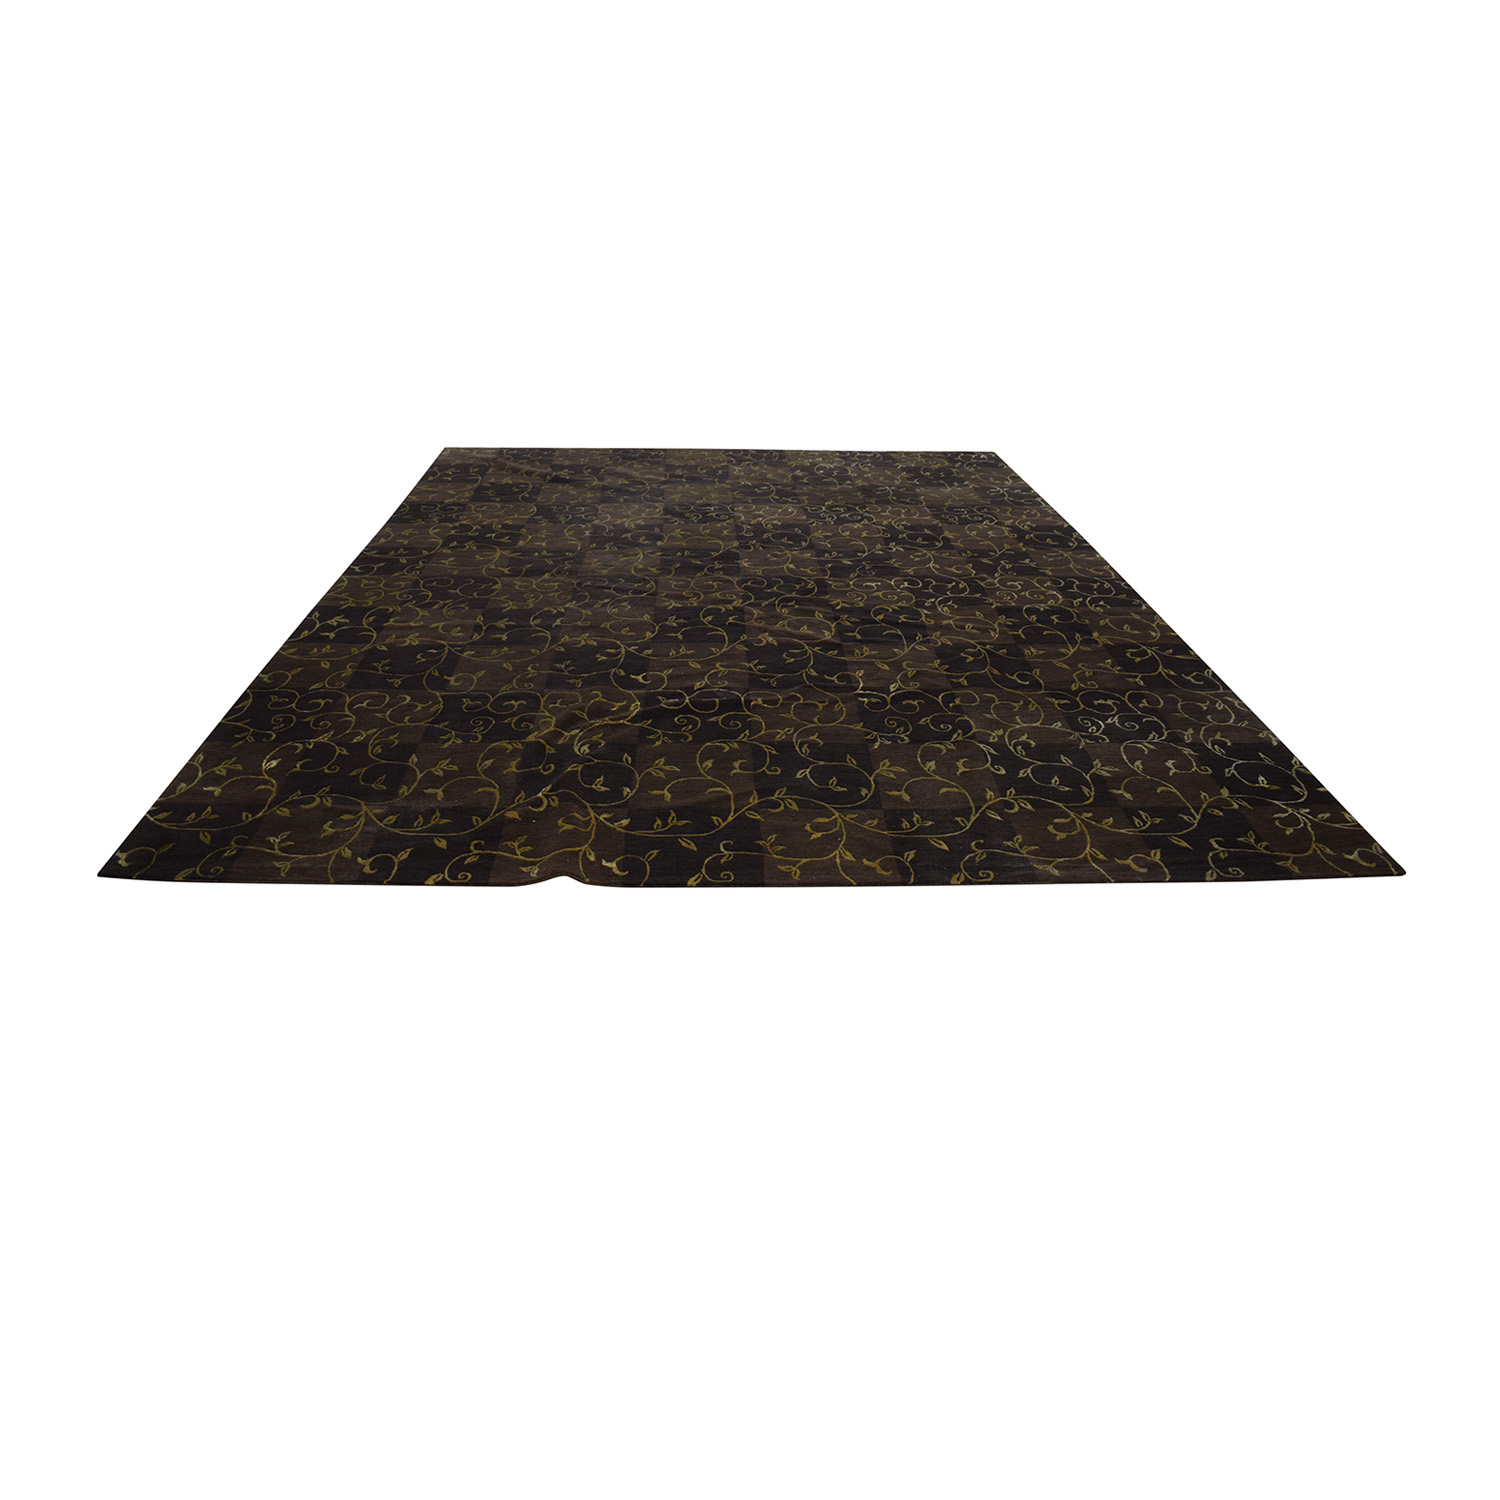 ABC Carpet & Home ABC Carpet & Home Brown and Gold Scroll Design Rug Decor